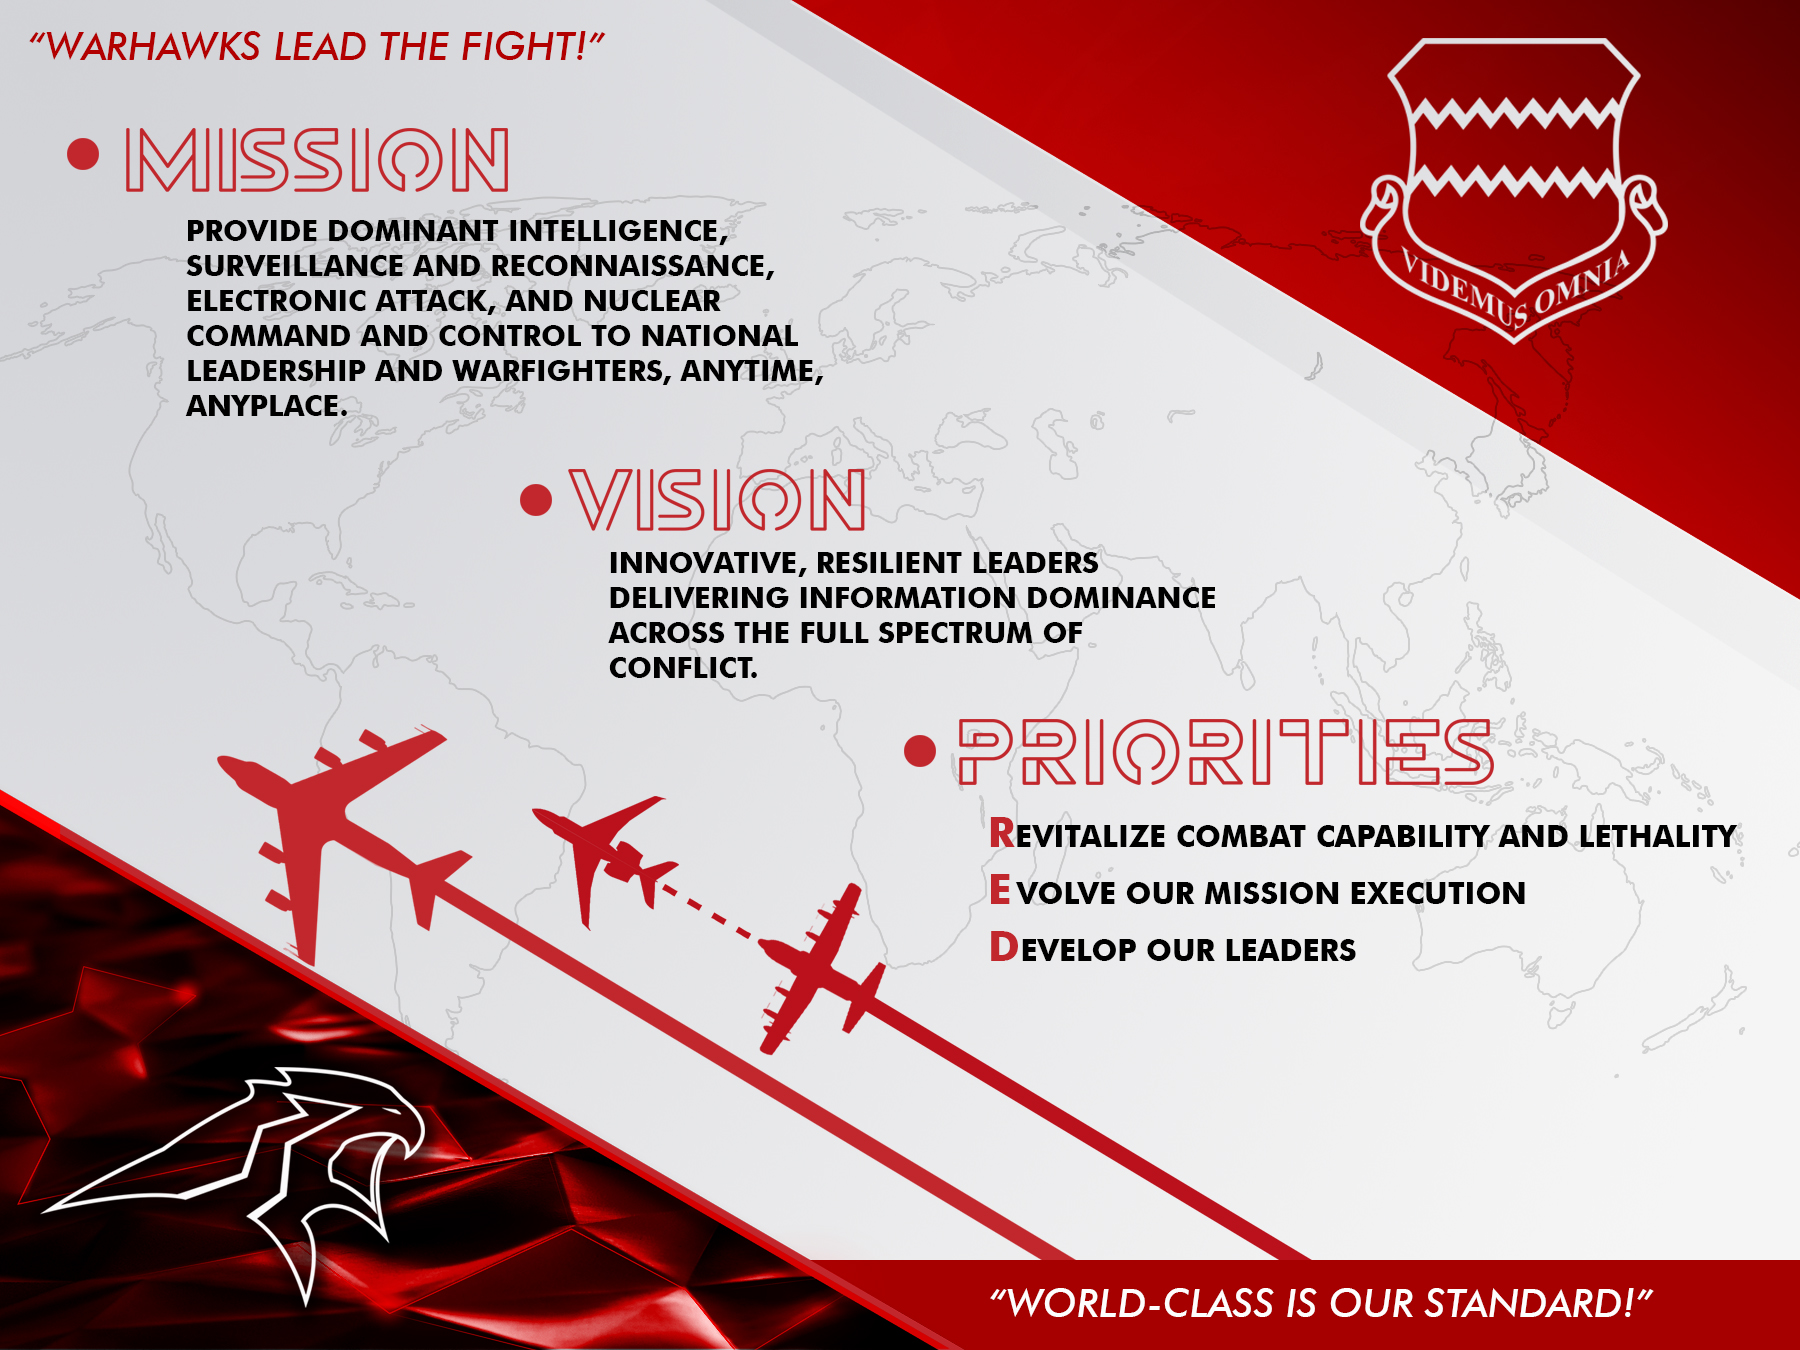 The 55th Wing's Mission, Vision and Priorities